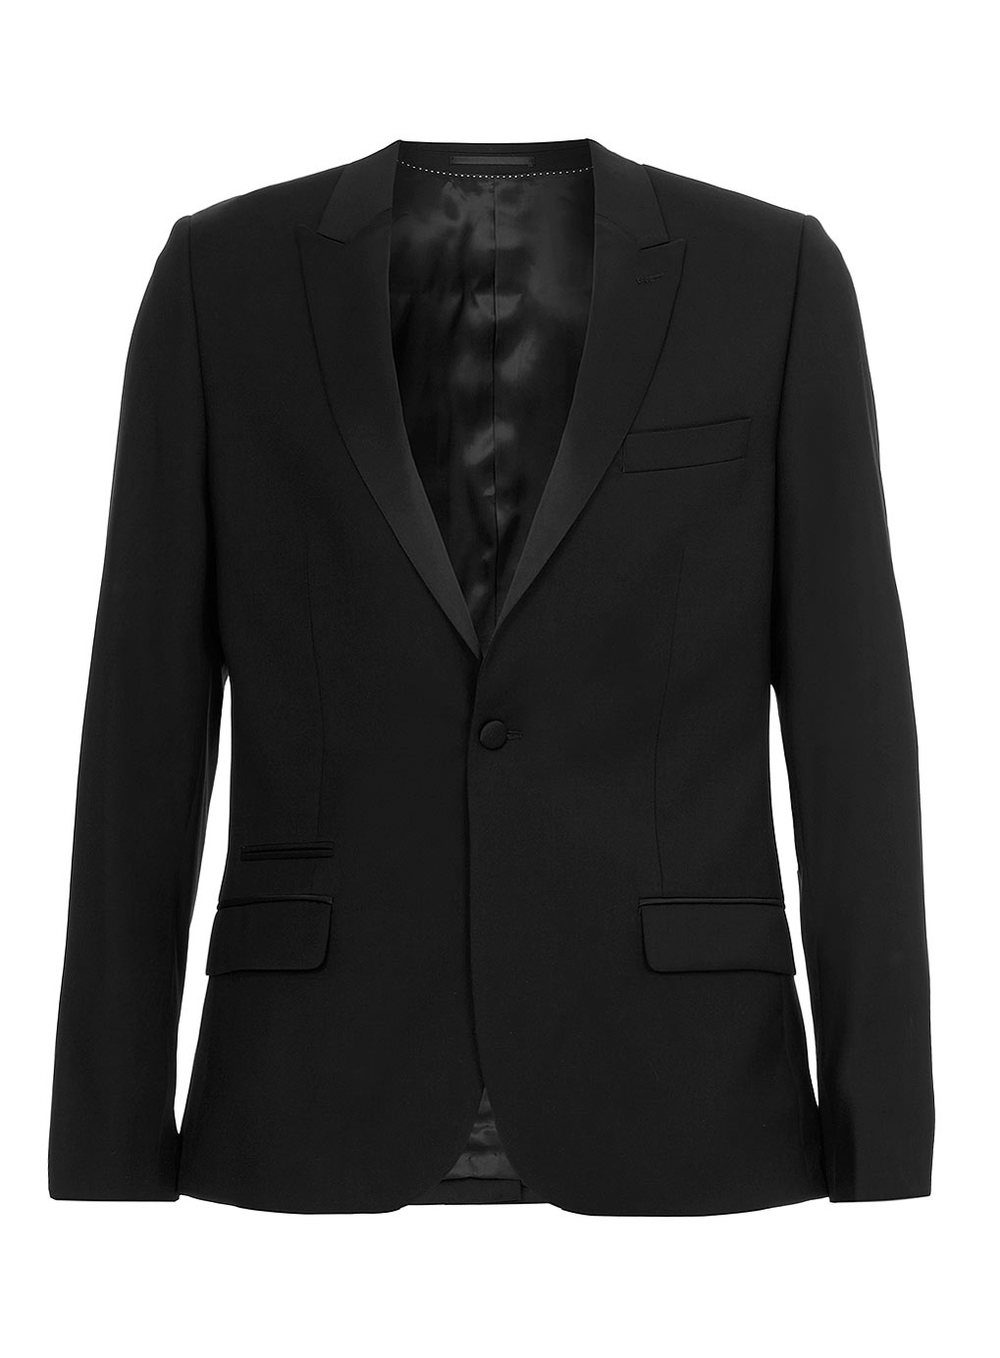 Black Niven Tux Skinny Suit Jacket, $300 at  Topman *